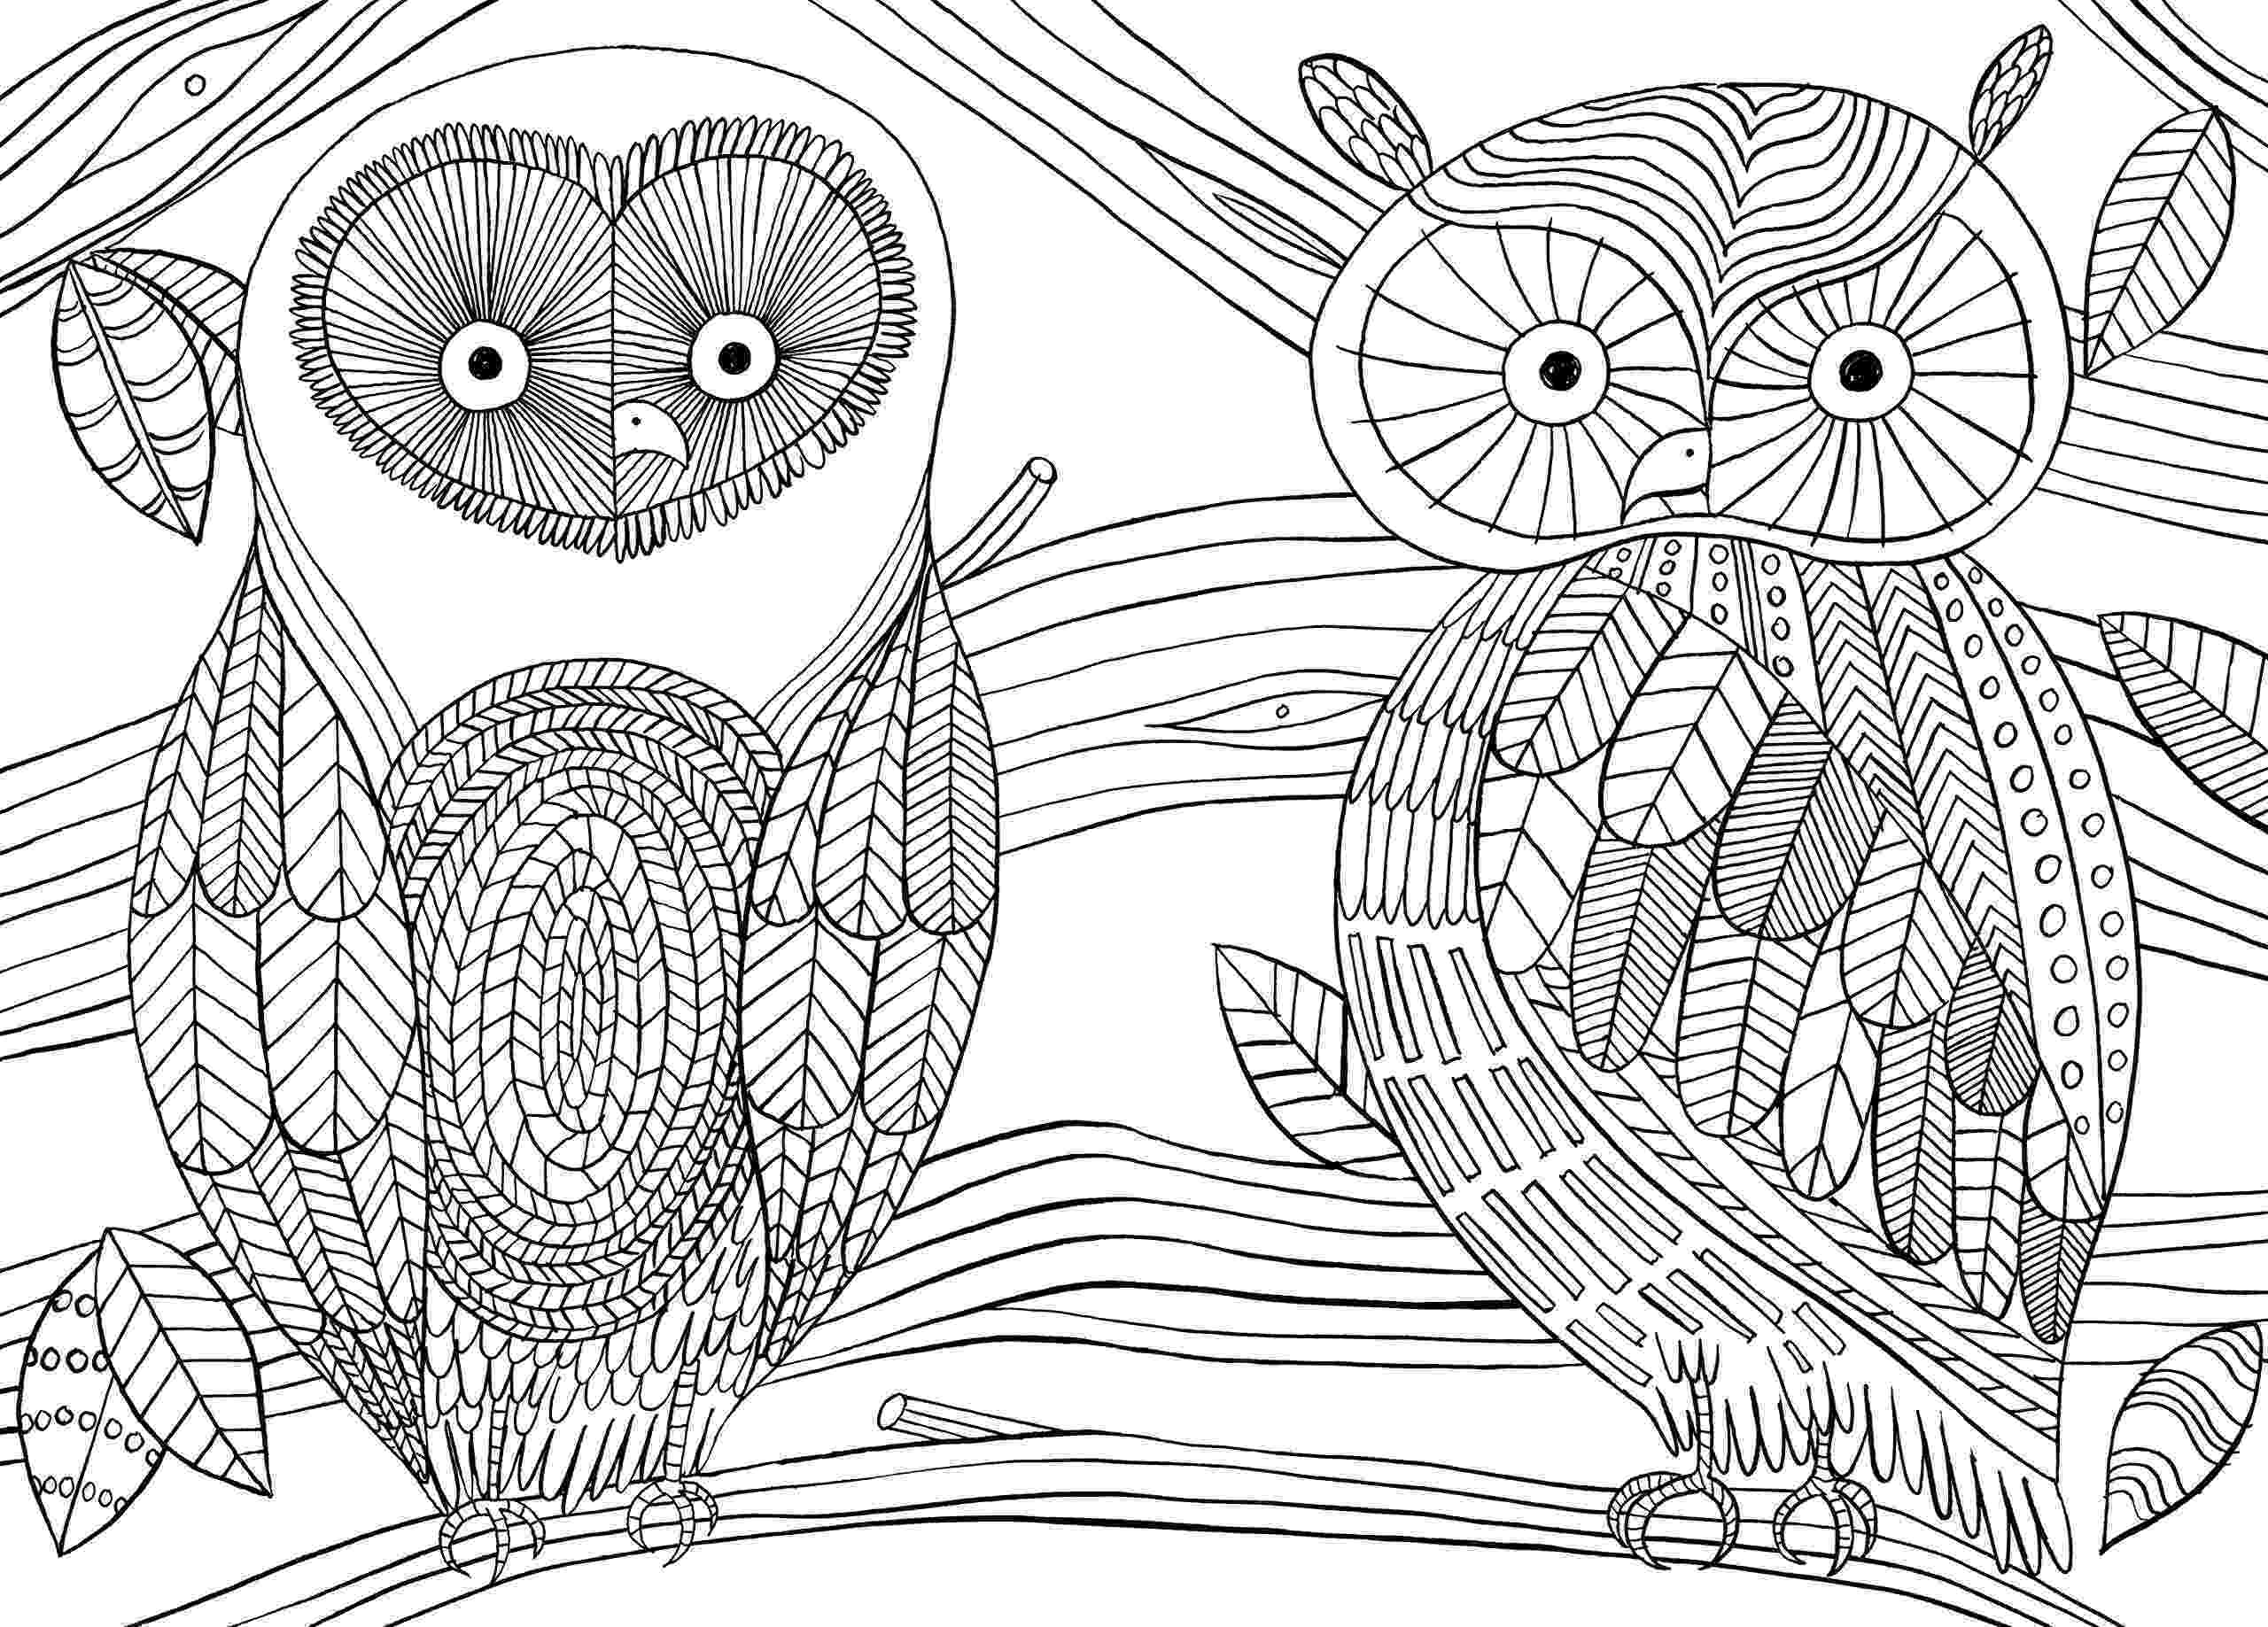 mindfulness colouring pages mindfulness drawing at getdrawings free download mindfulness pages colouring